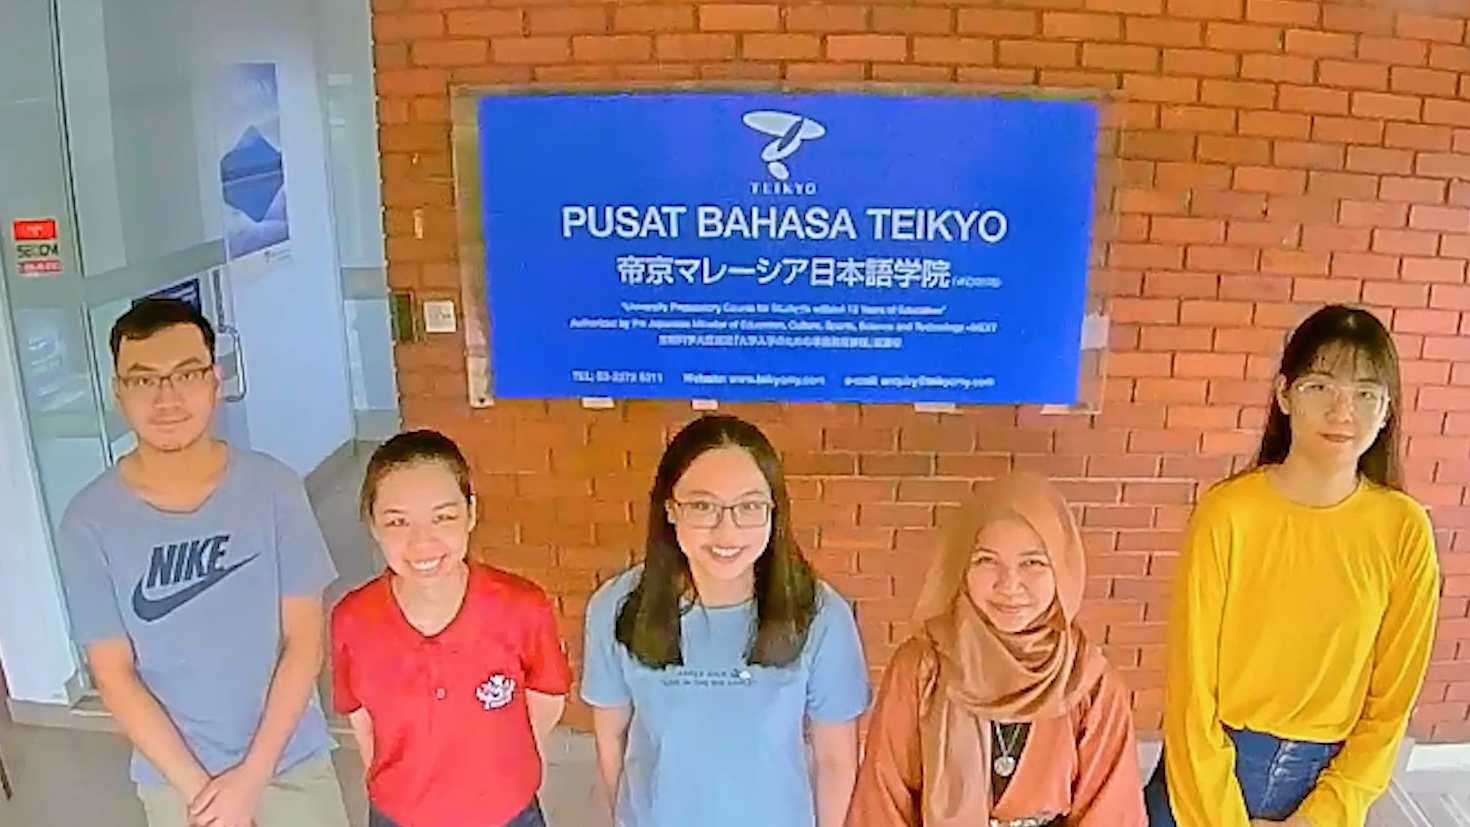 Why Study in Pusat Bahasa Teikyo?